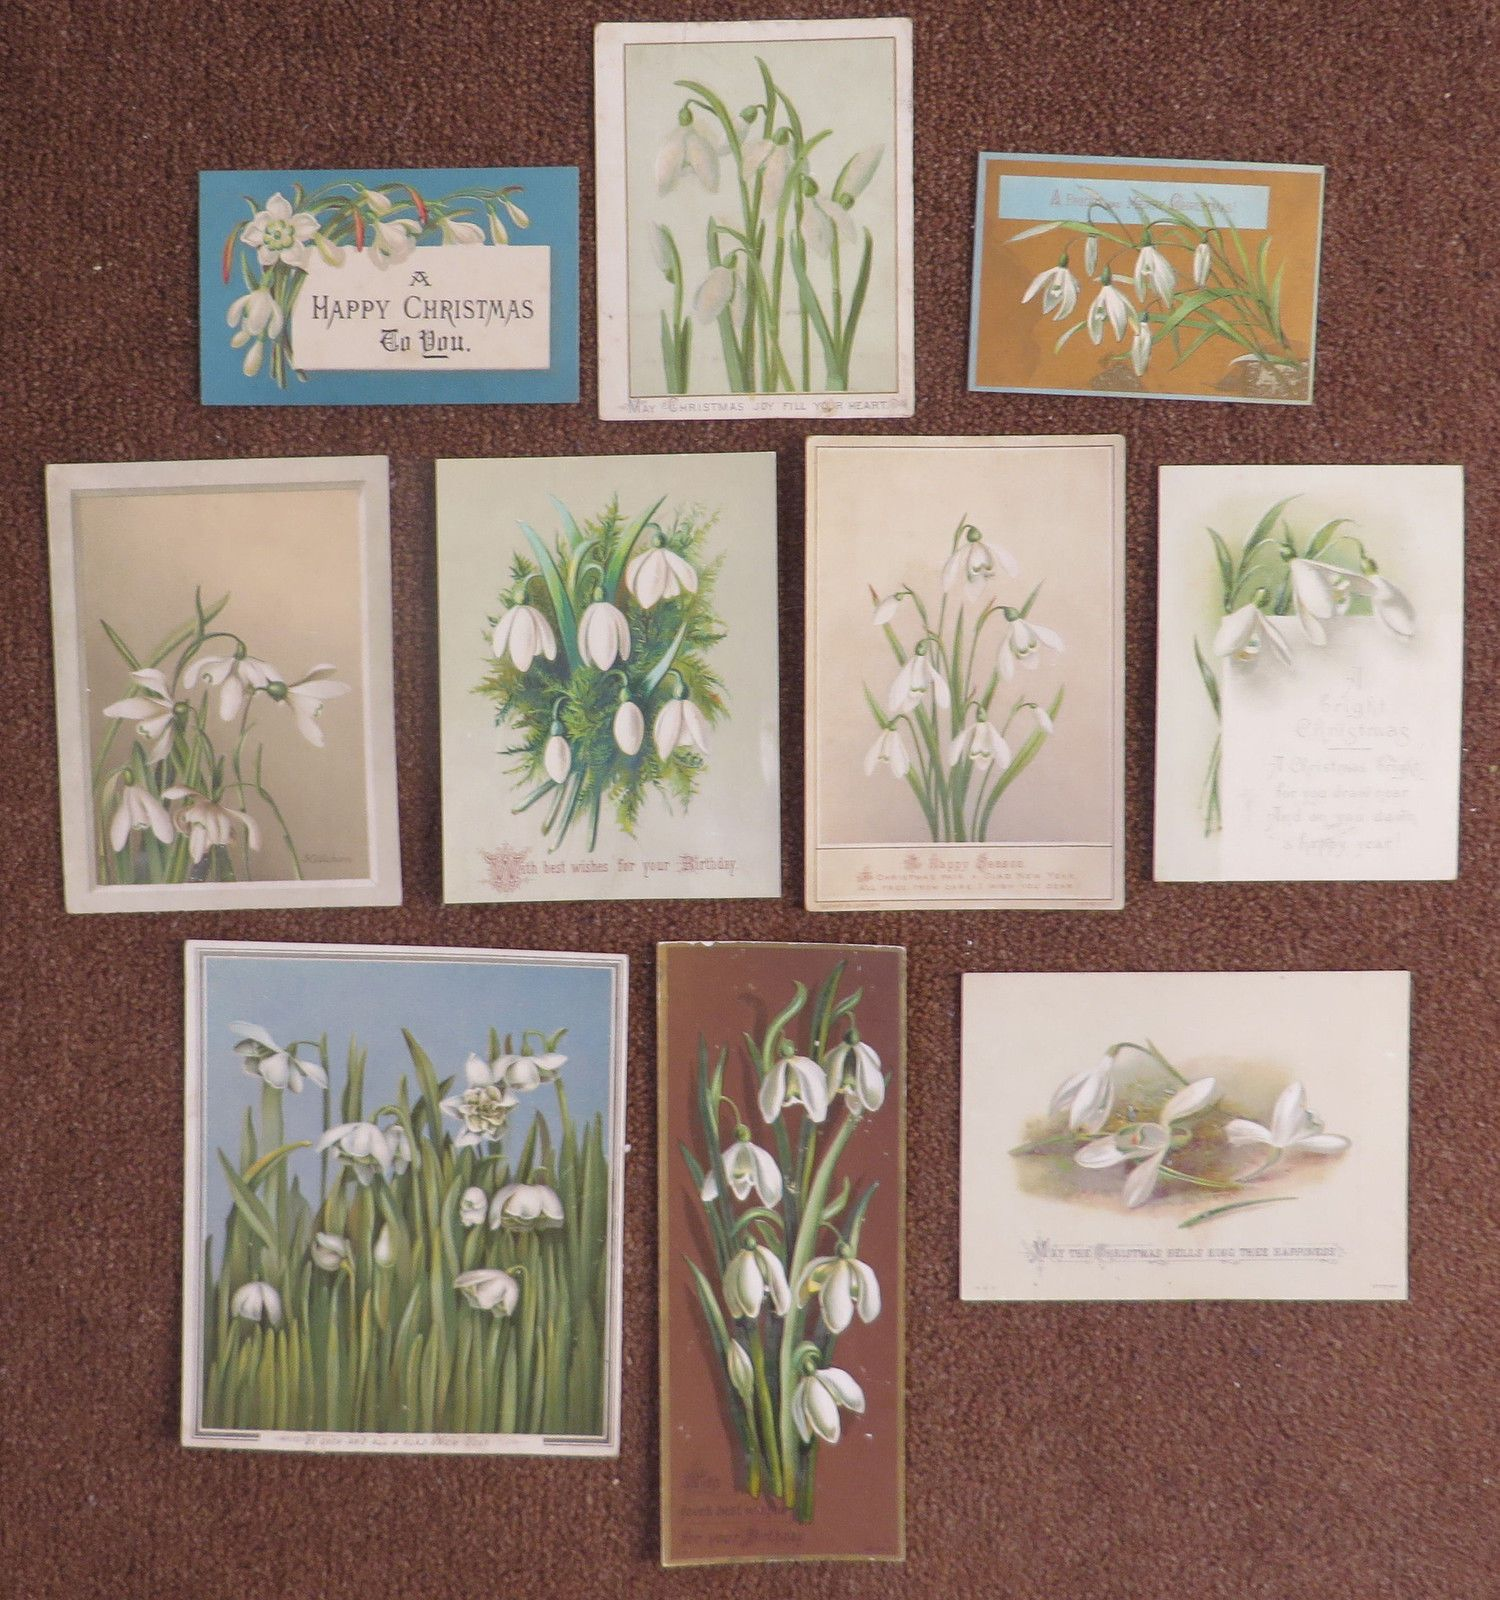 C2549 10 Victorian Greetings Cards: Snowdrops | eBay